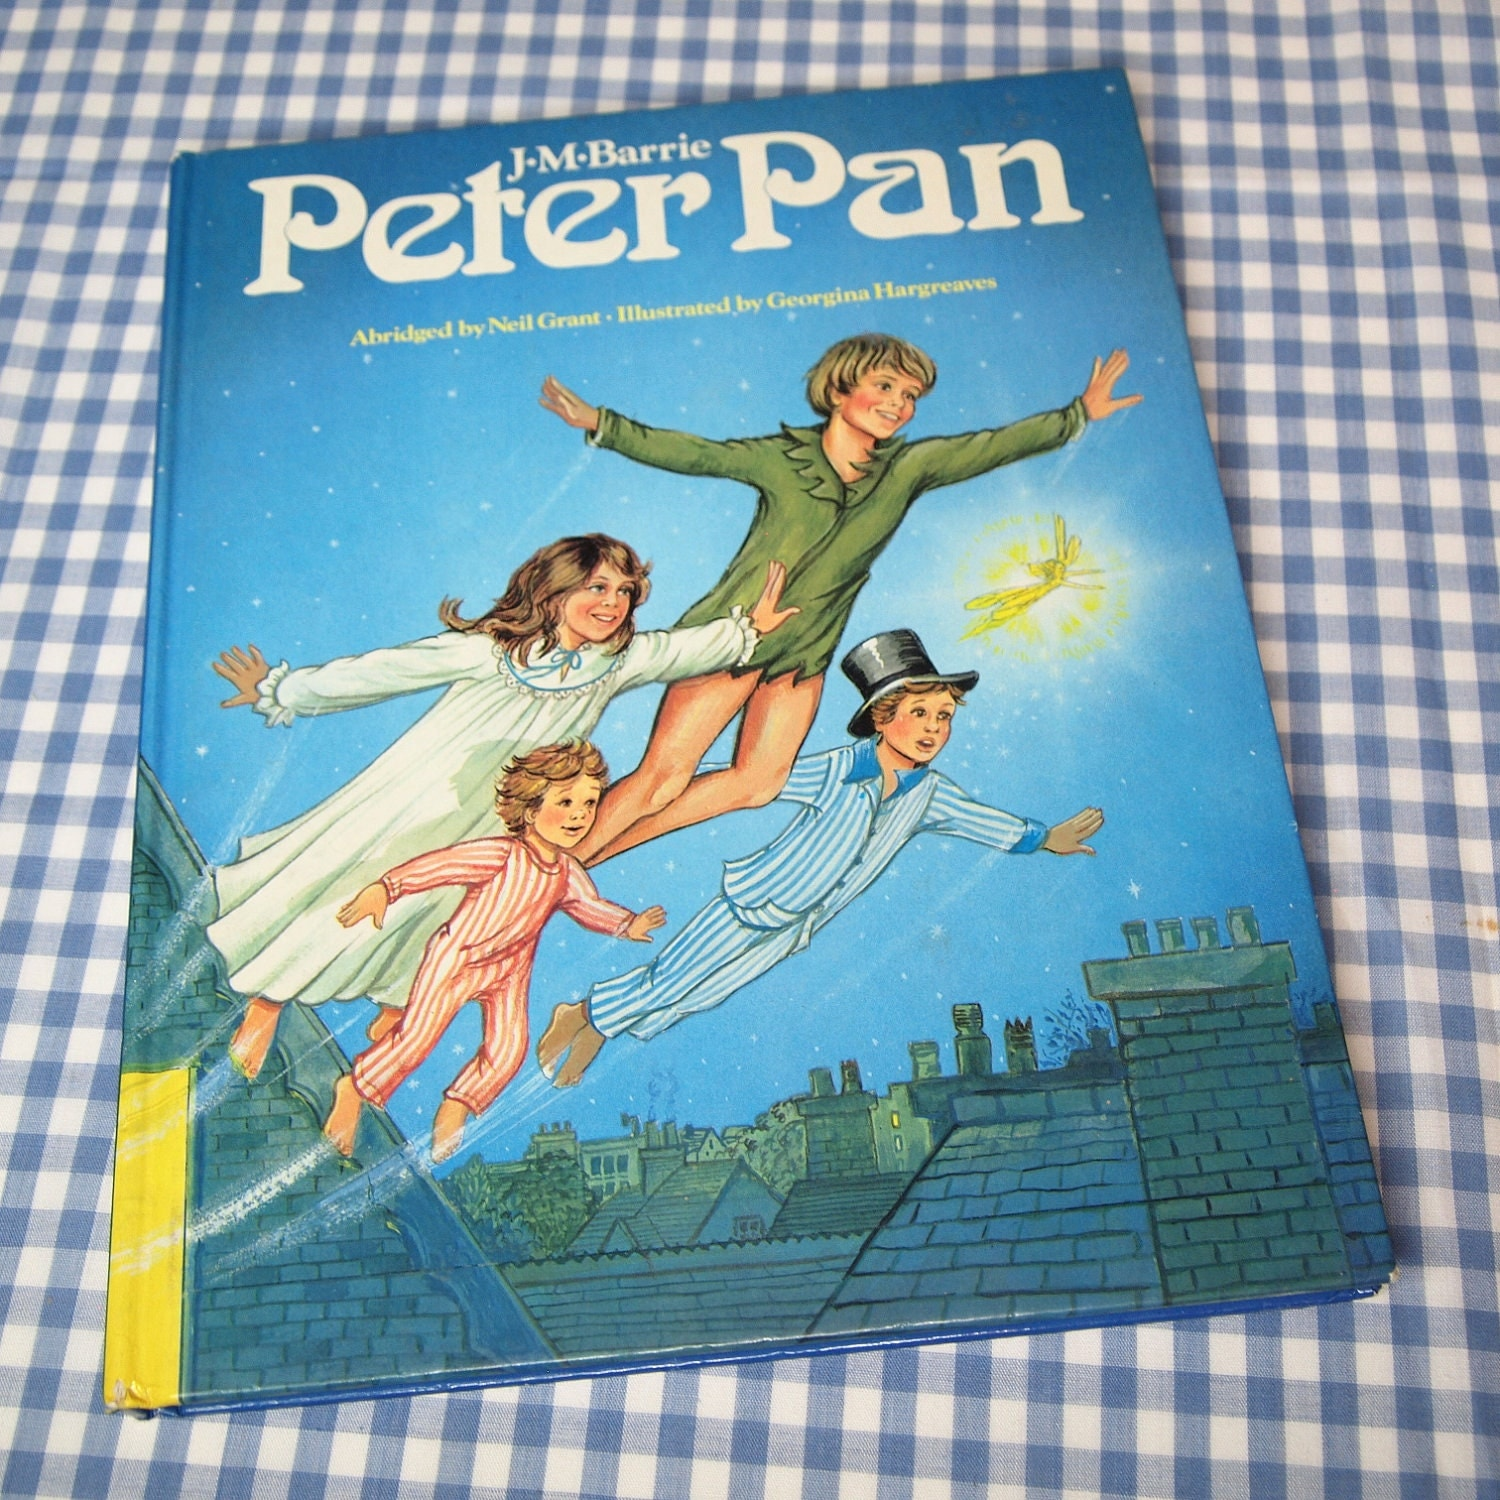 peter pan essays childhood Peter pan's name is now used symbolically for a bus company (speedy, thrilling travel), a brand of peanut butter (childhood treats), and shops, motels, and restaurants all over the world a psychological disorder, the peter pan syndrome, has also been named after barrie's hero.